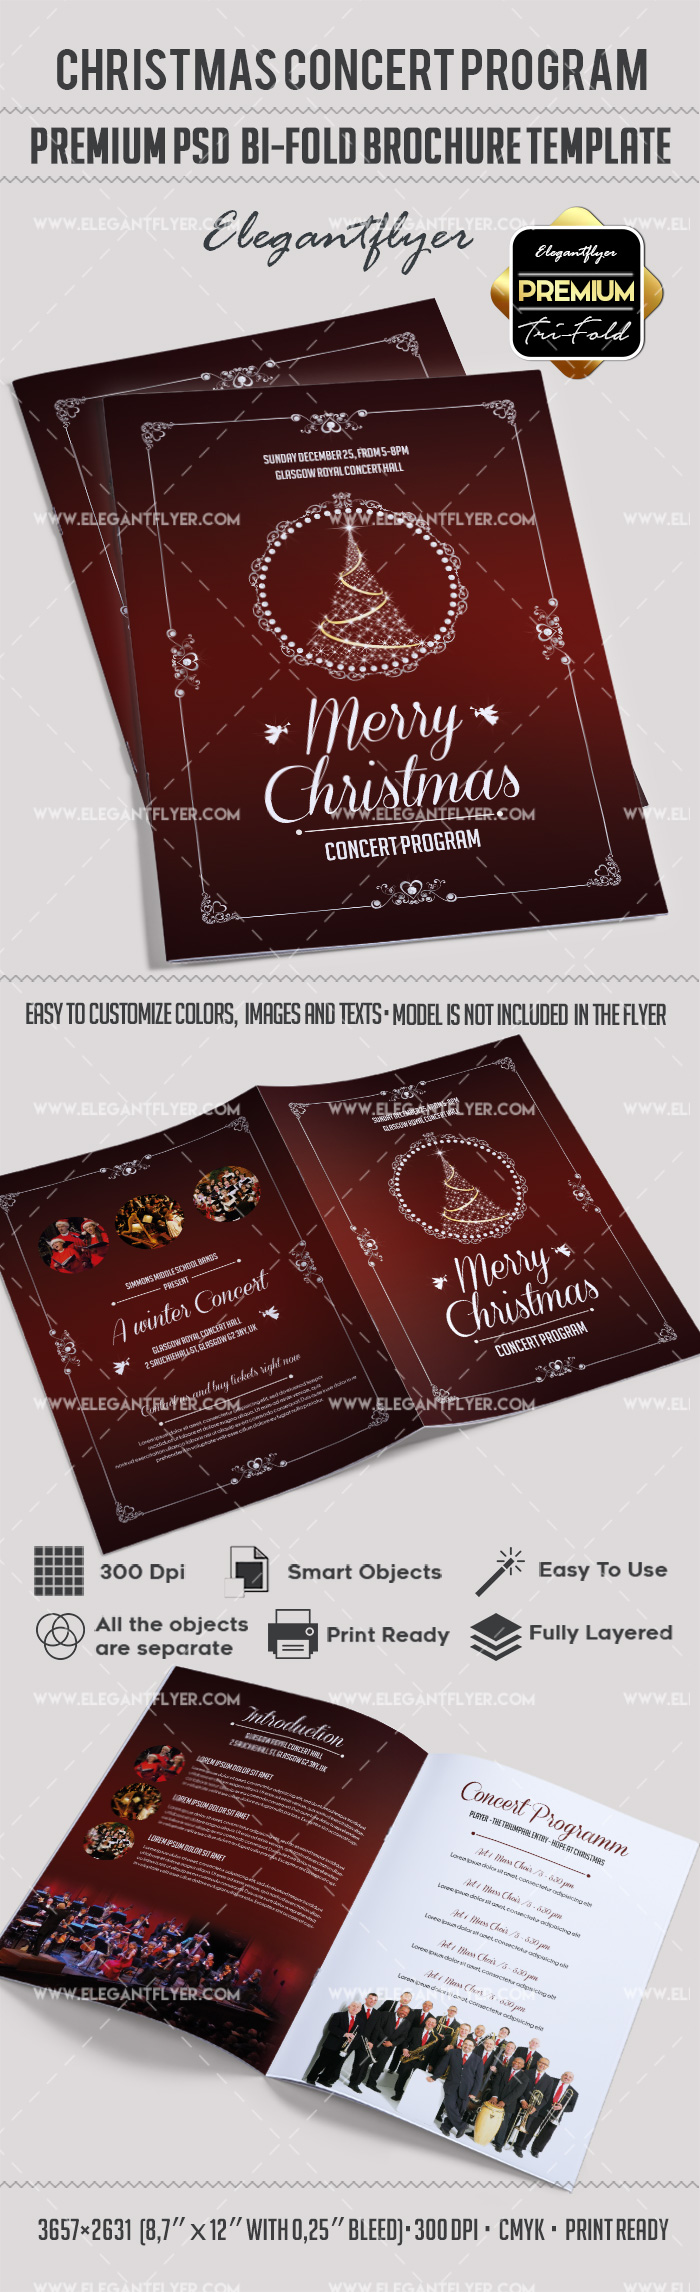 Christmas Concert Brochure in PSD